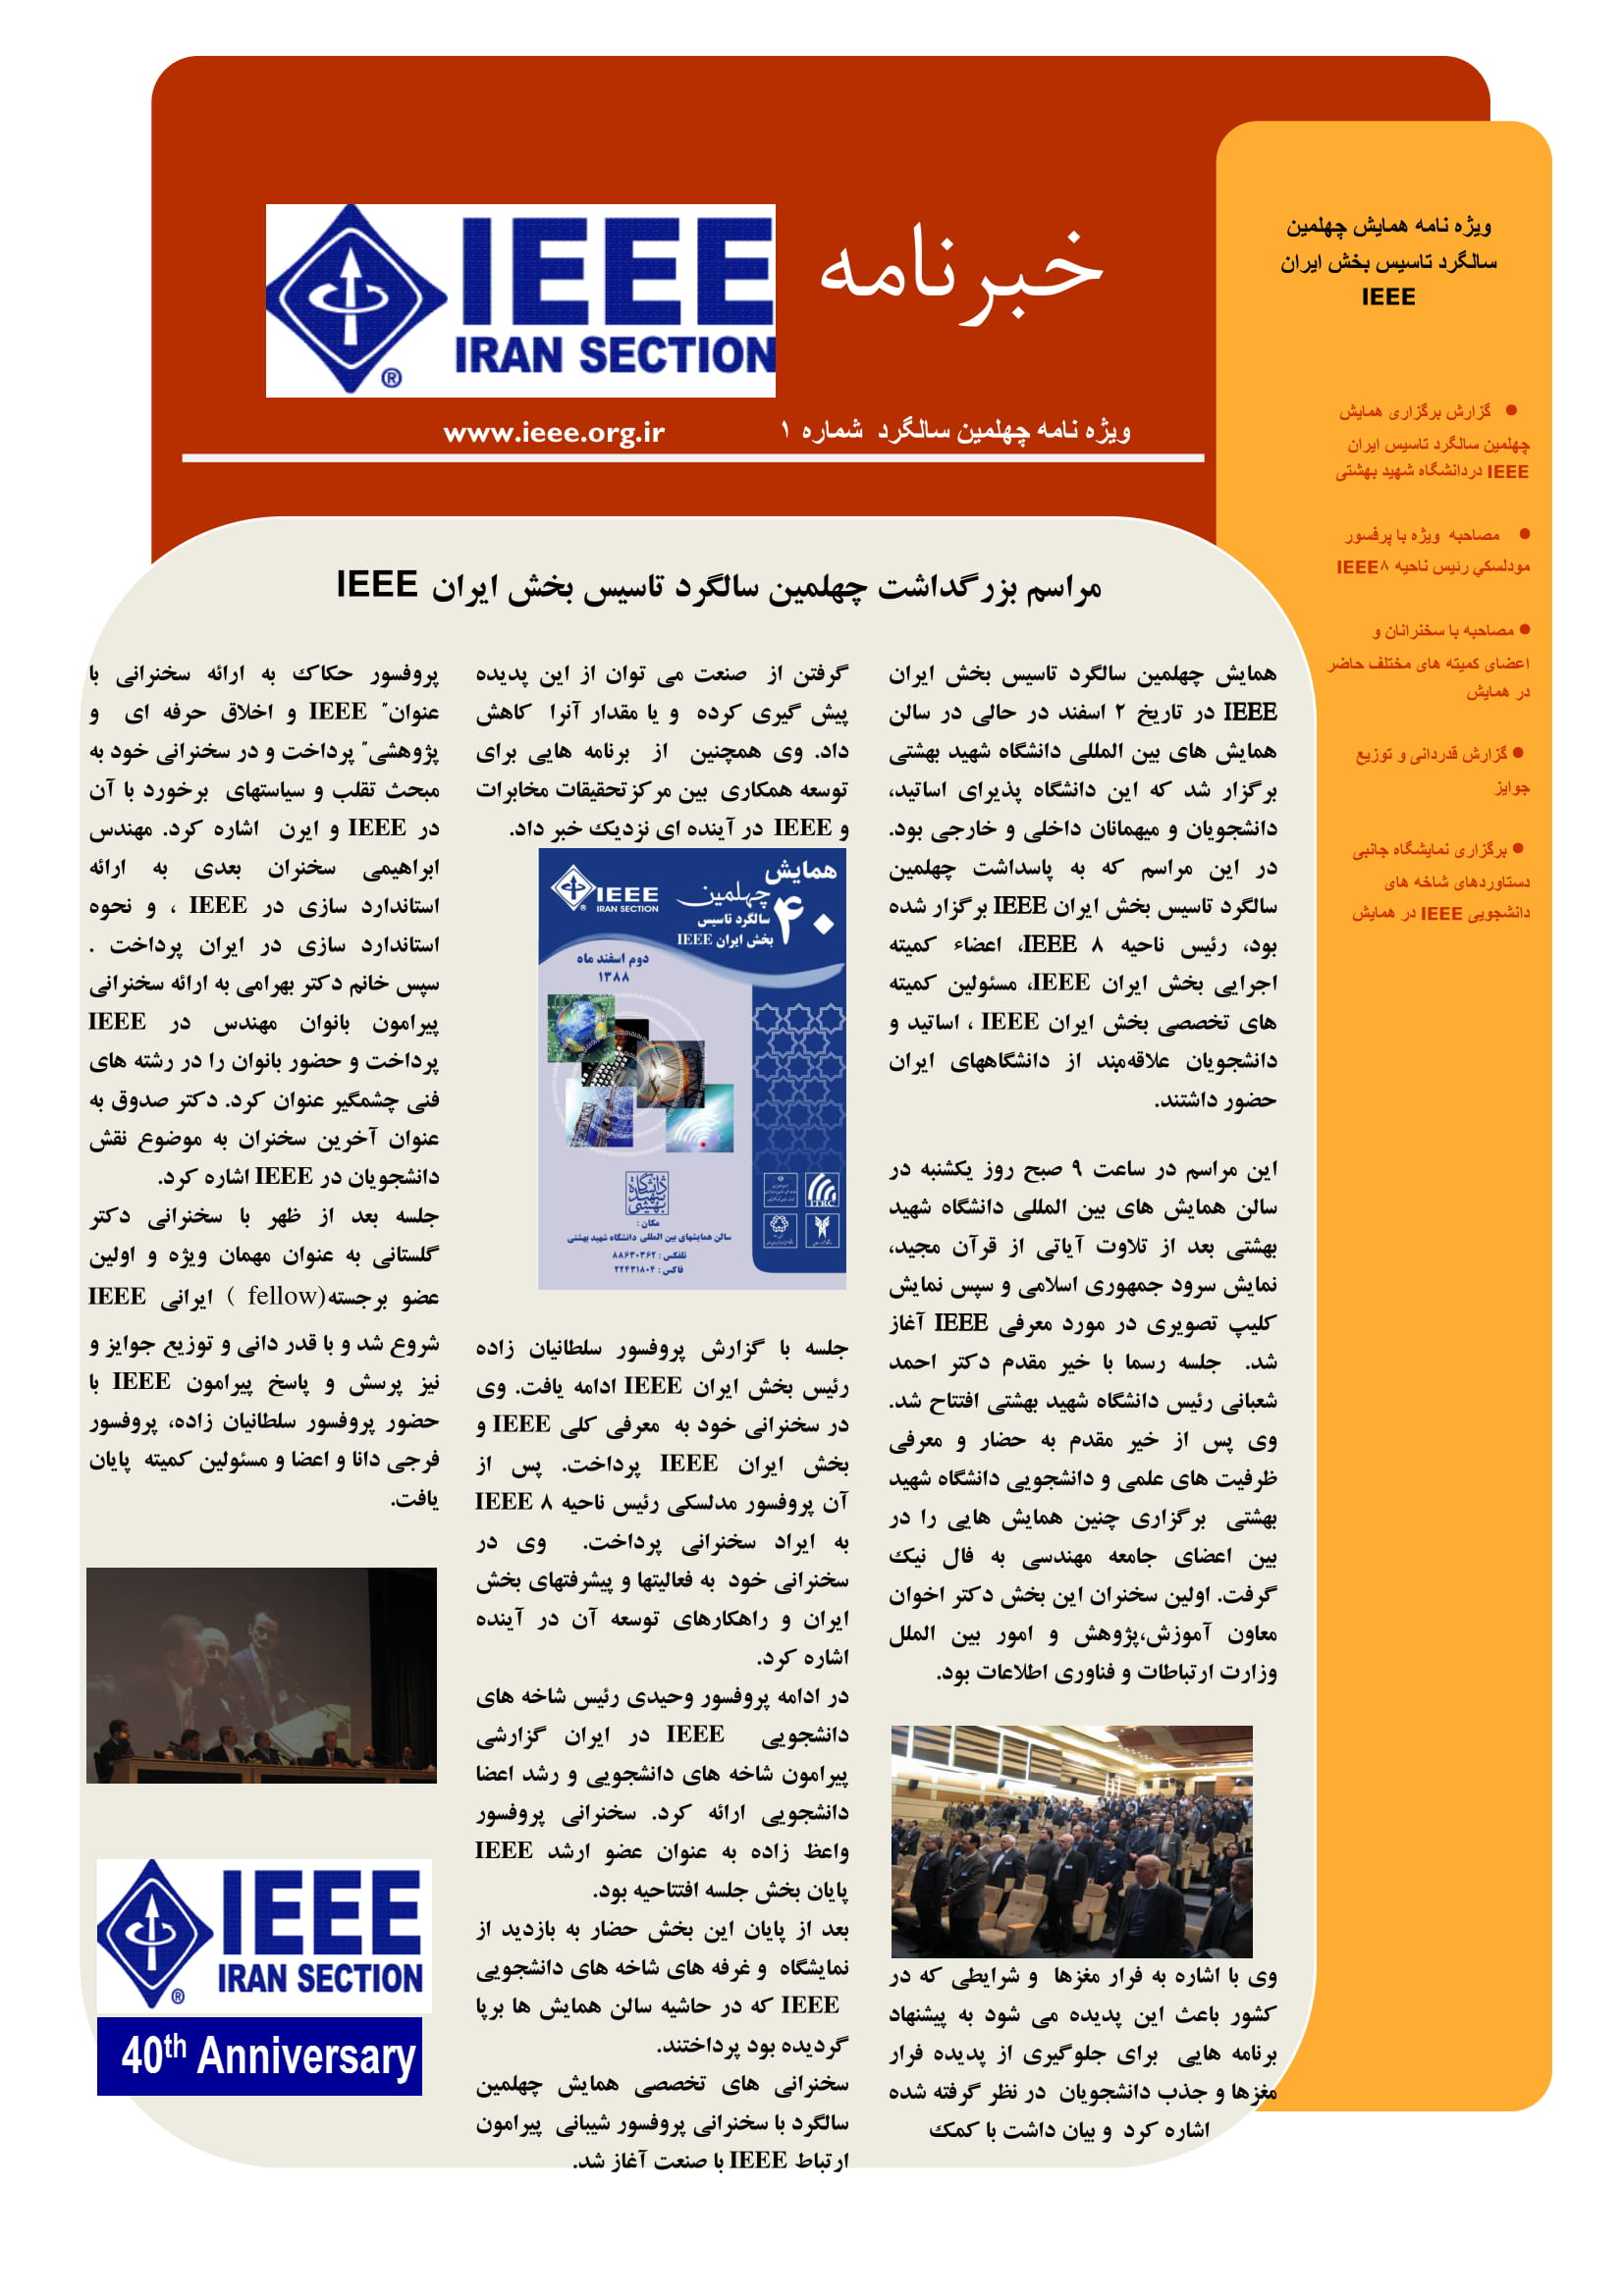 IEEE-Iran-Section_40th Anniversary_Newsletter_1389_Special_Issue_No.1-1